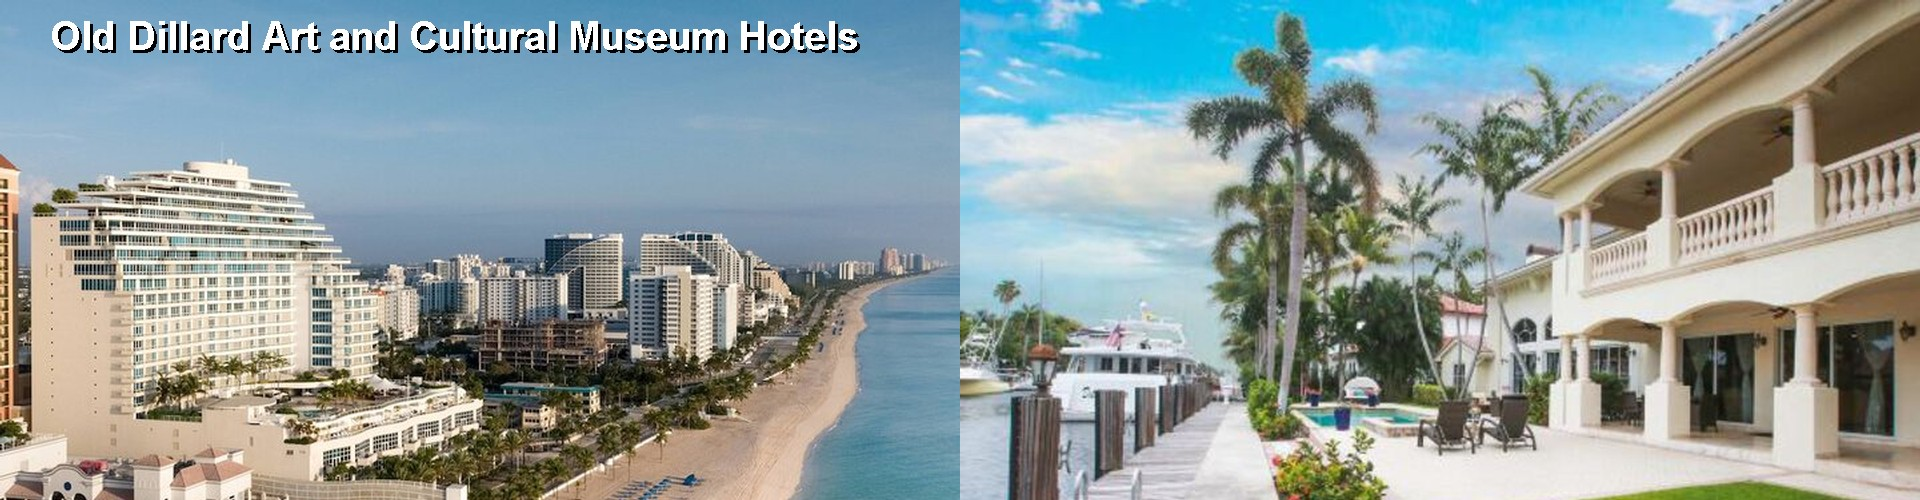 Hotels Near Old Dillard Art and Cultural Museum in Fort Lauderdale (FL)